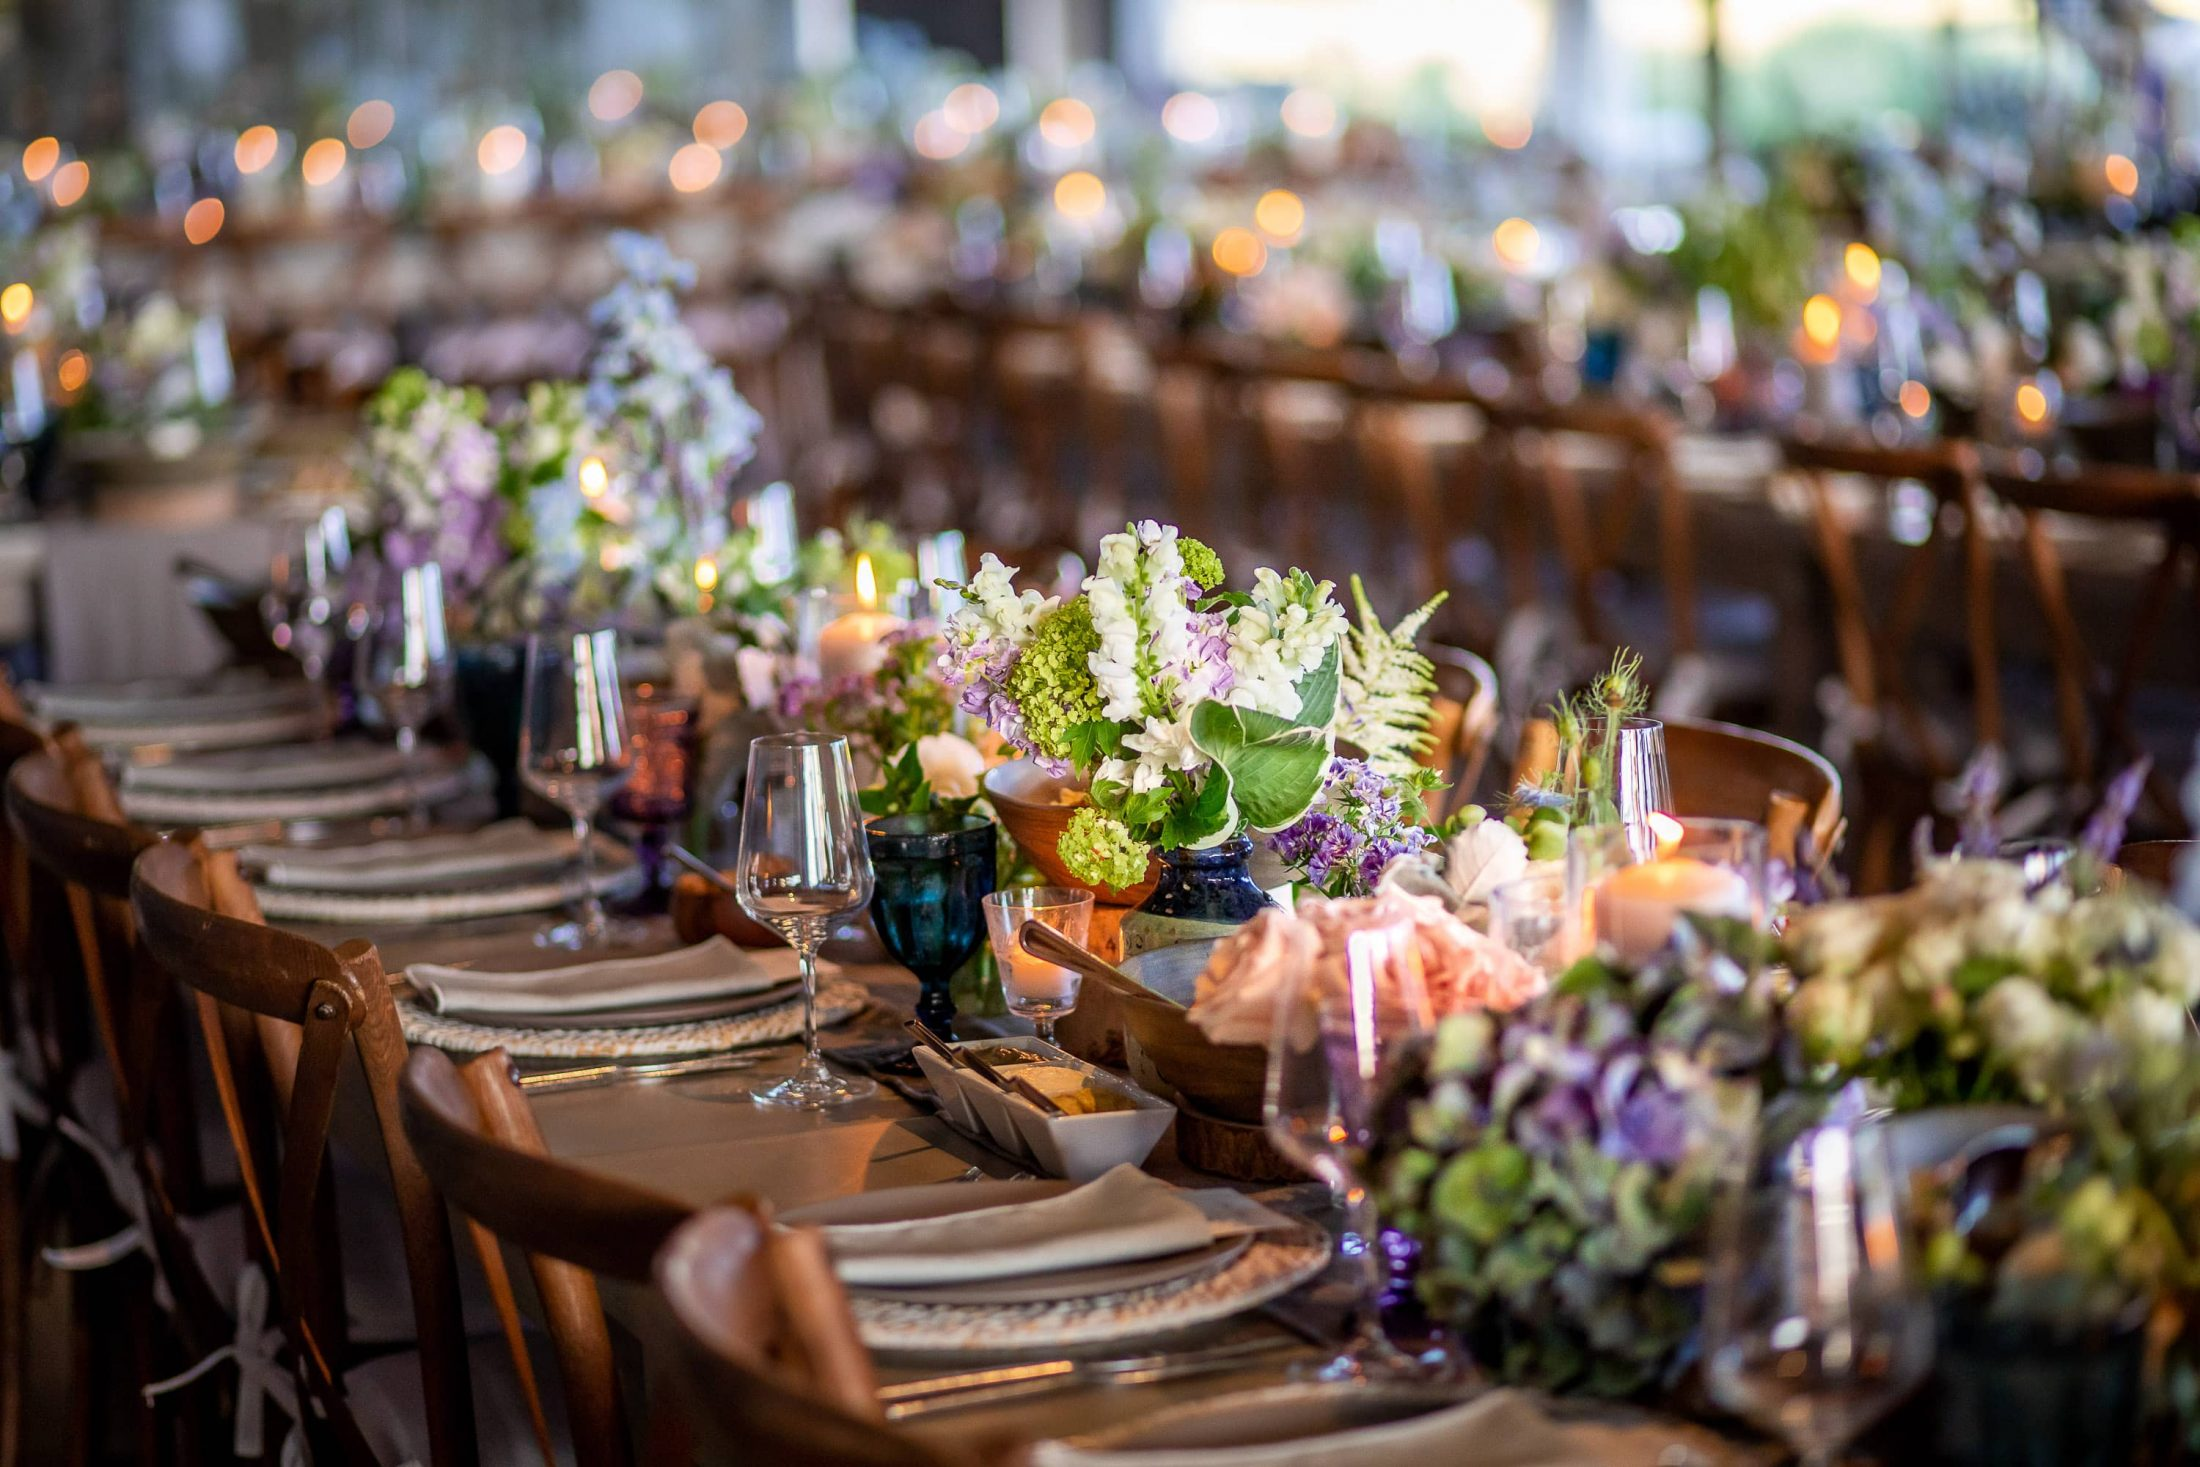 Reception table decor at this Hamptons wedding weekend held at The Parrish Museum | Photo by Roey Yohai Studio